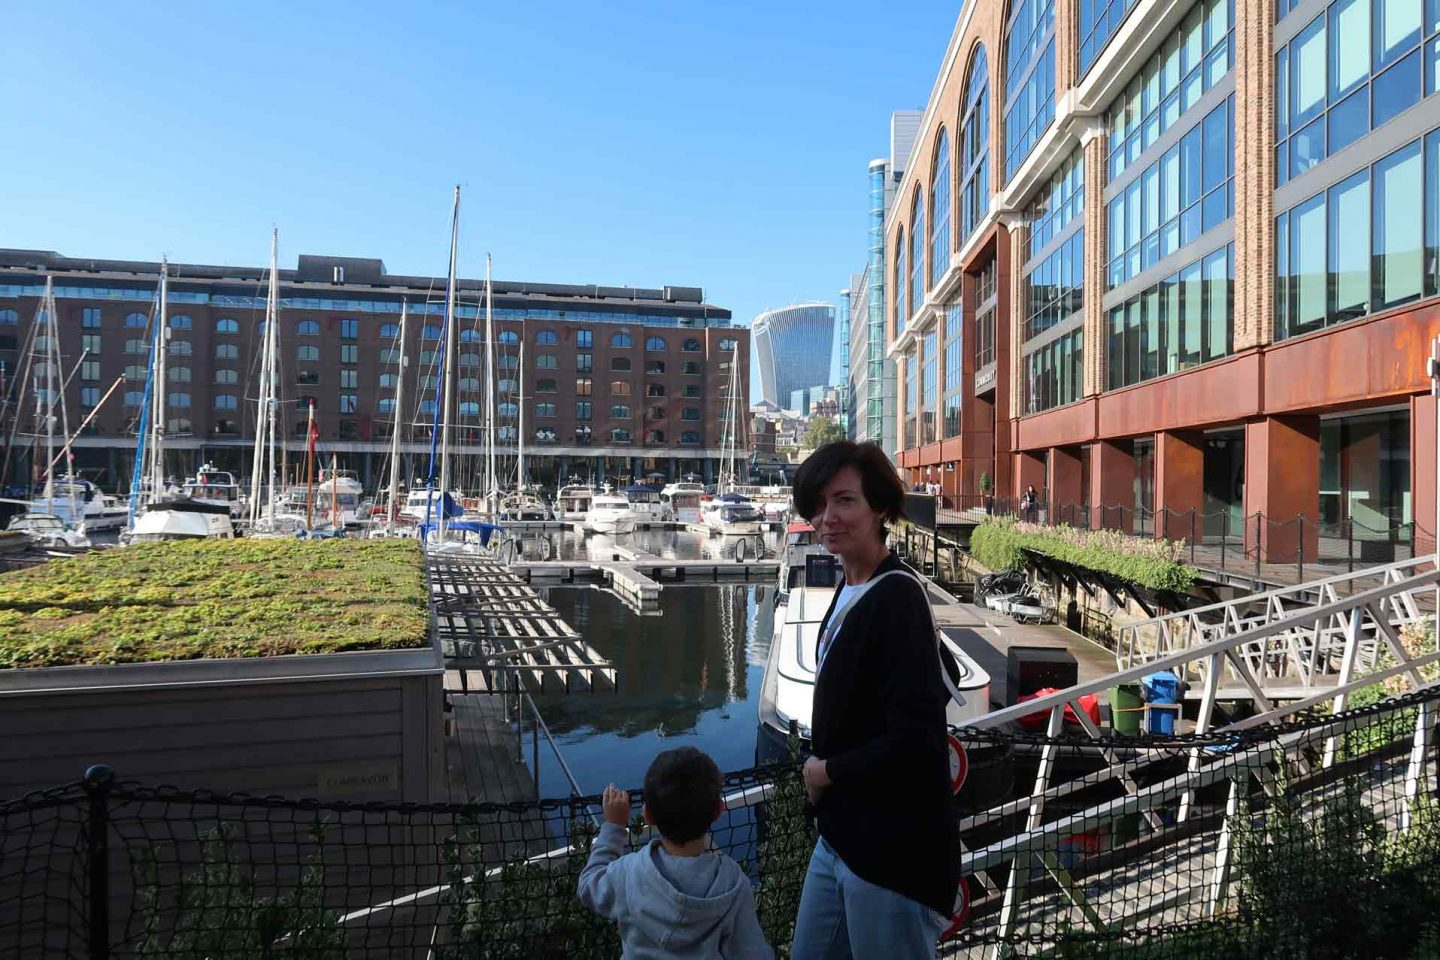 What to do near the Tower Bridge: St Katharine Docks